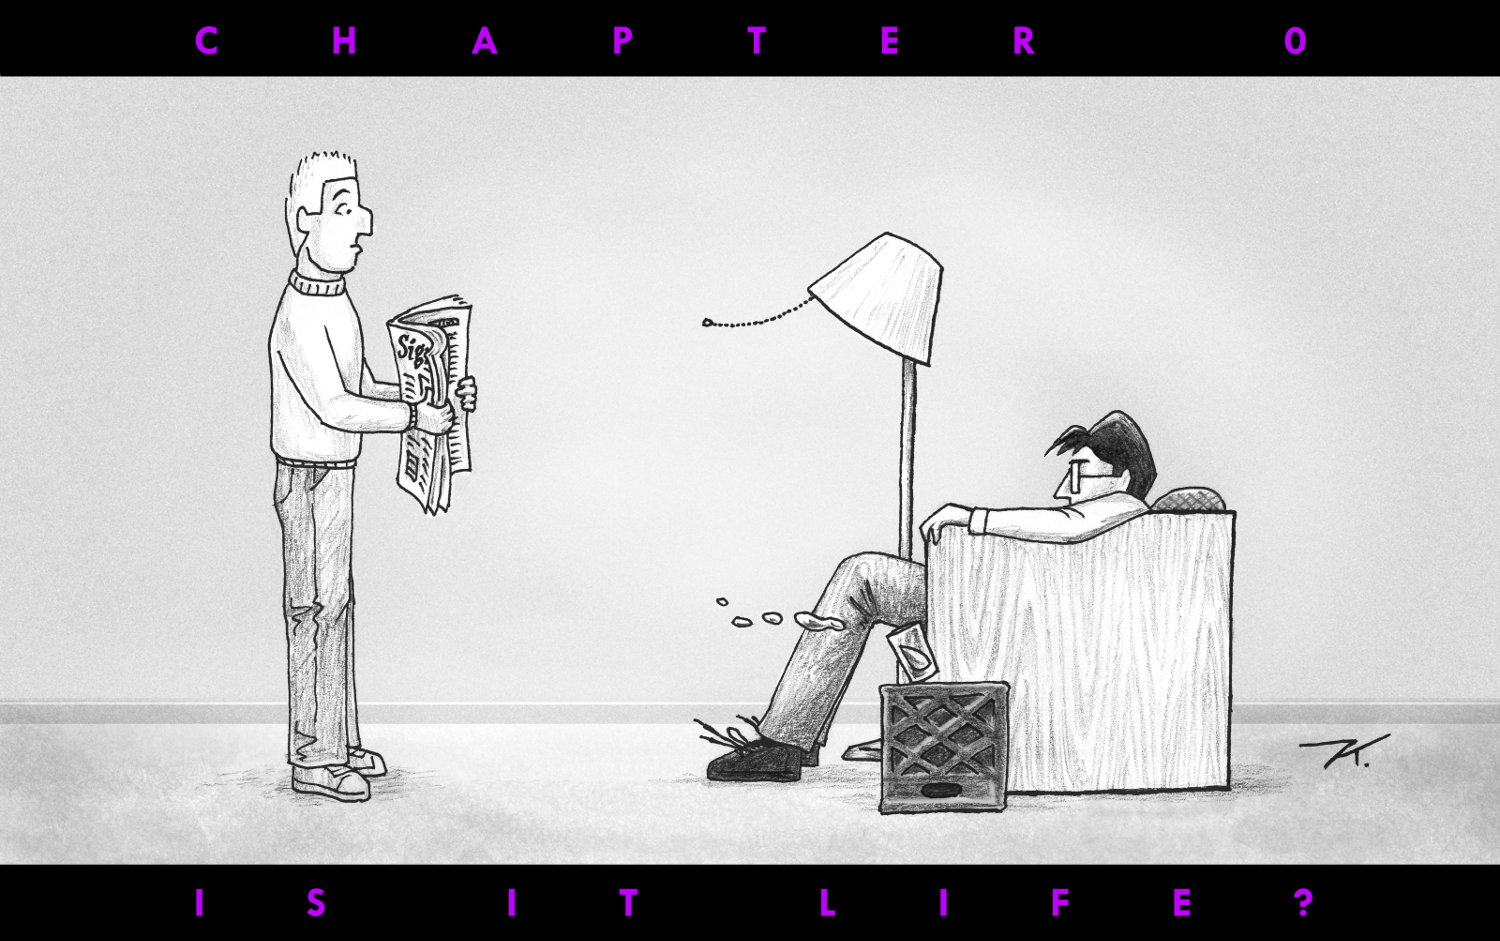 Chapter 0: Is It Life?